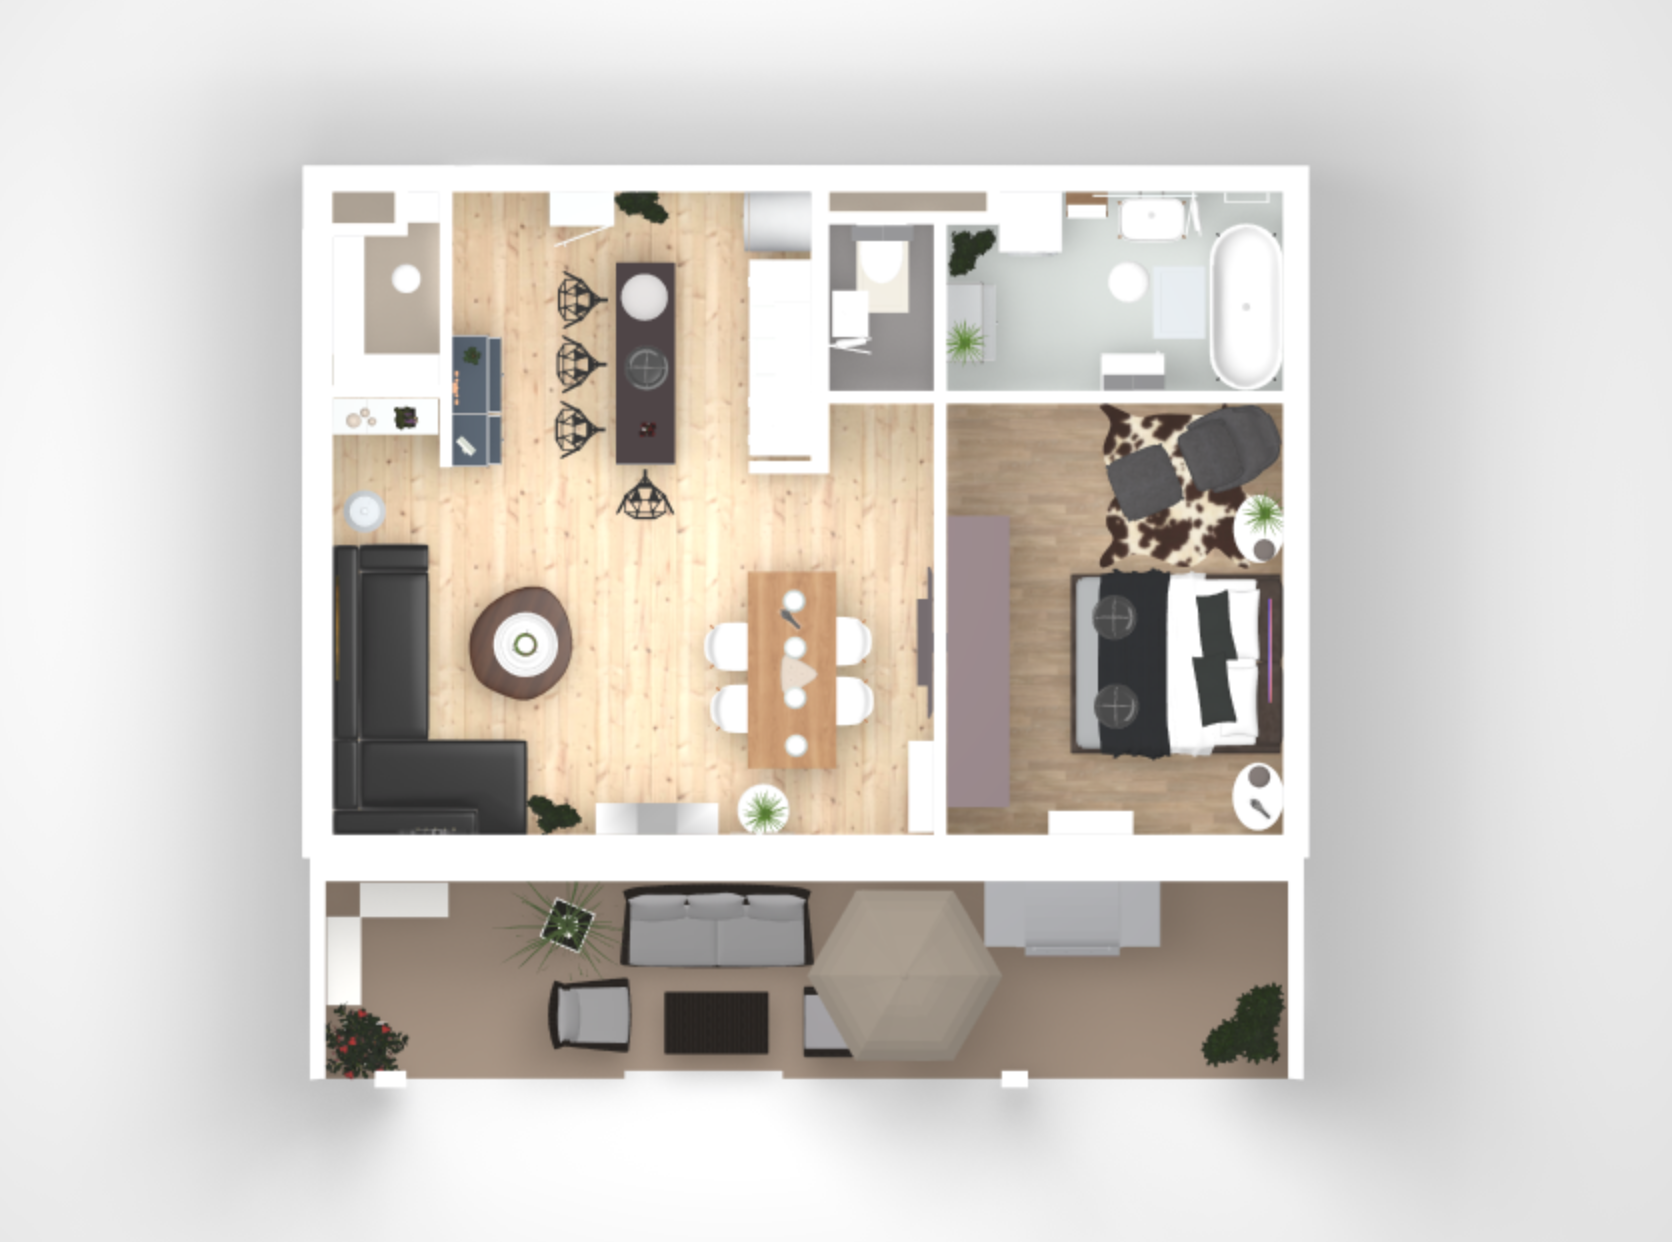 All Floor Plans Can Be Embedded Into Your Website